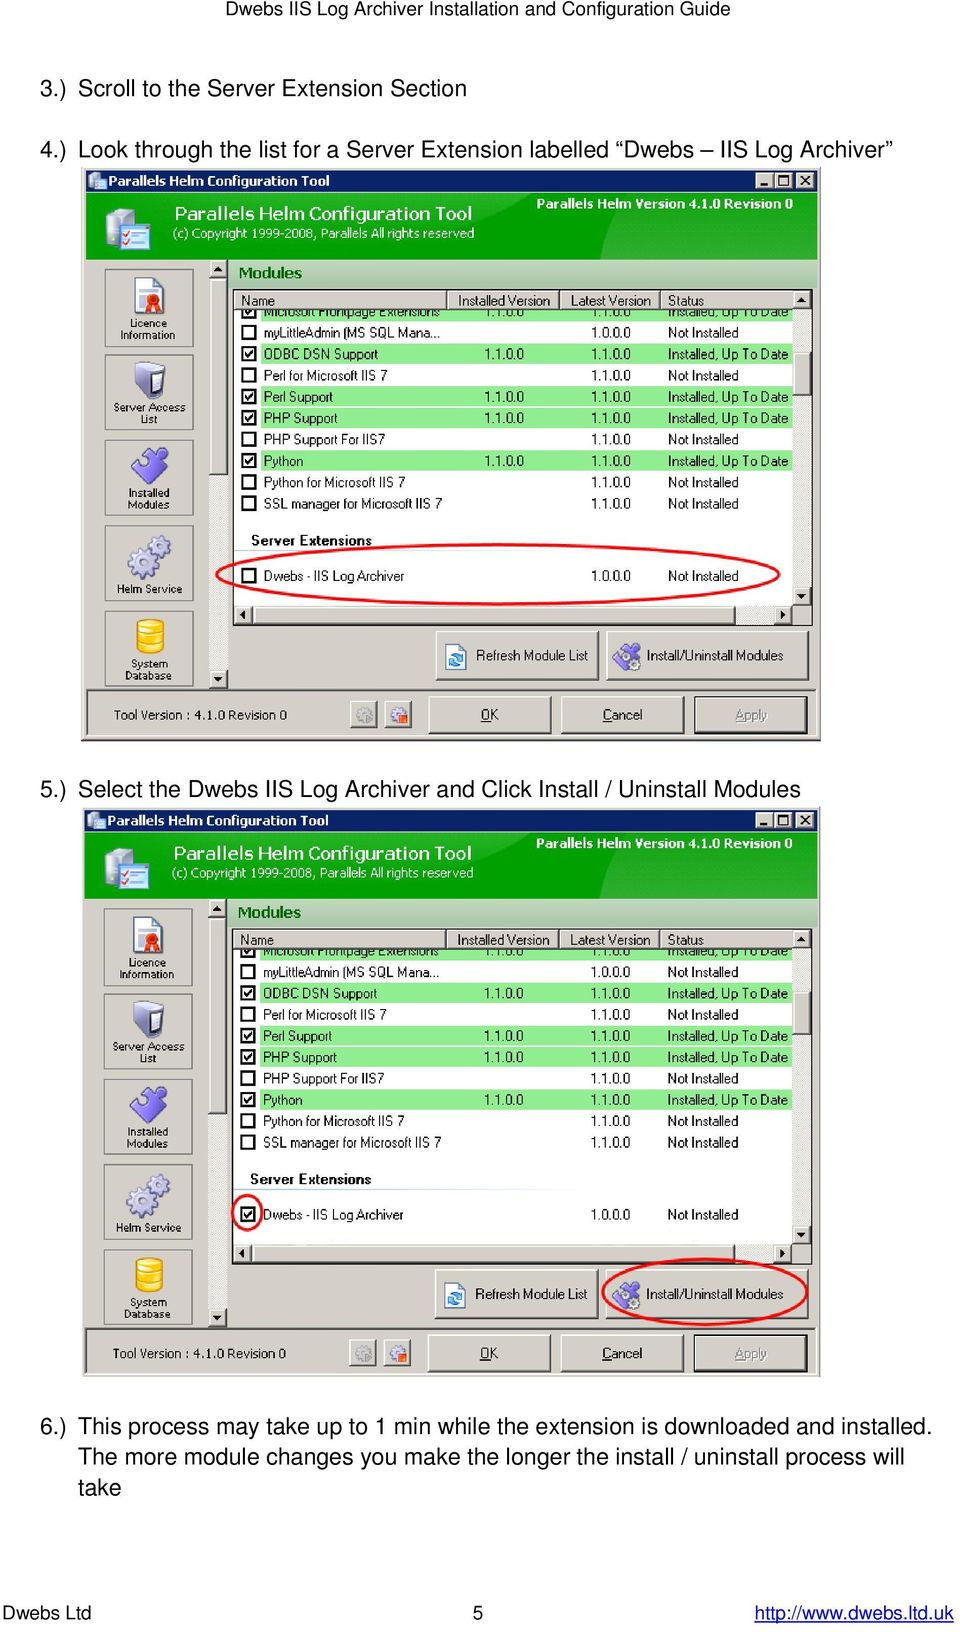 ) Select the Dwebs IIS Log Archiver and Click Install / Uninstall Modules 6.